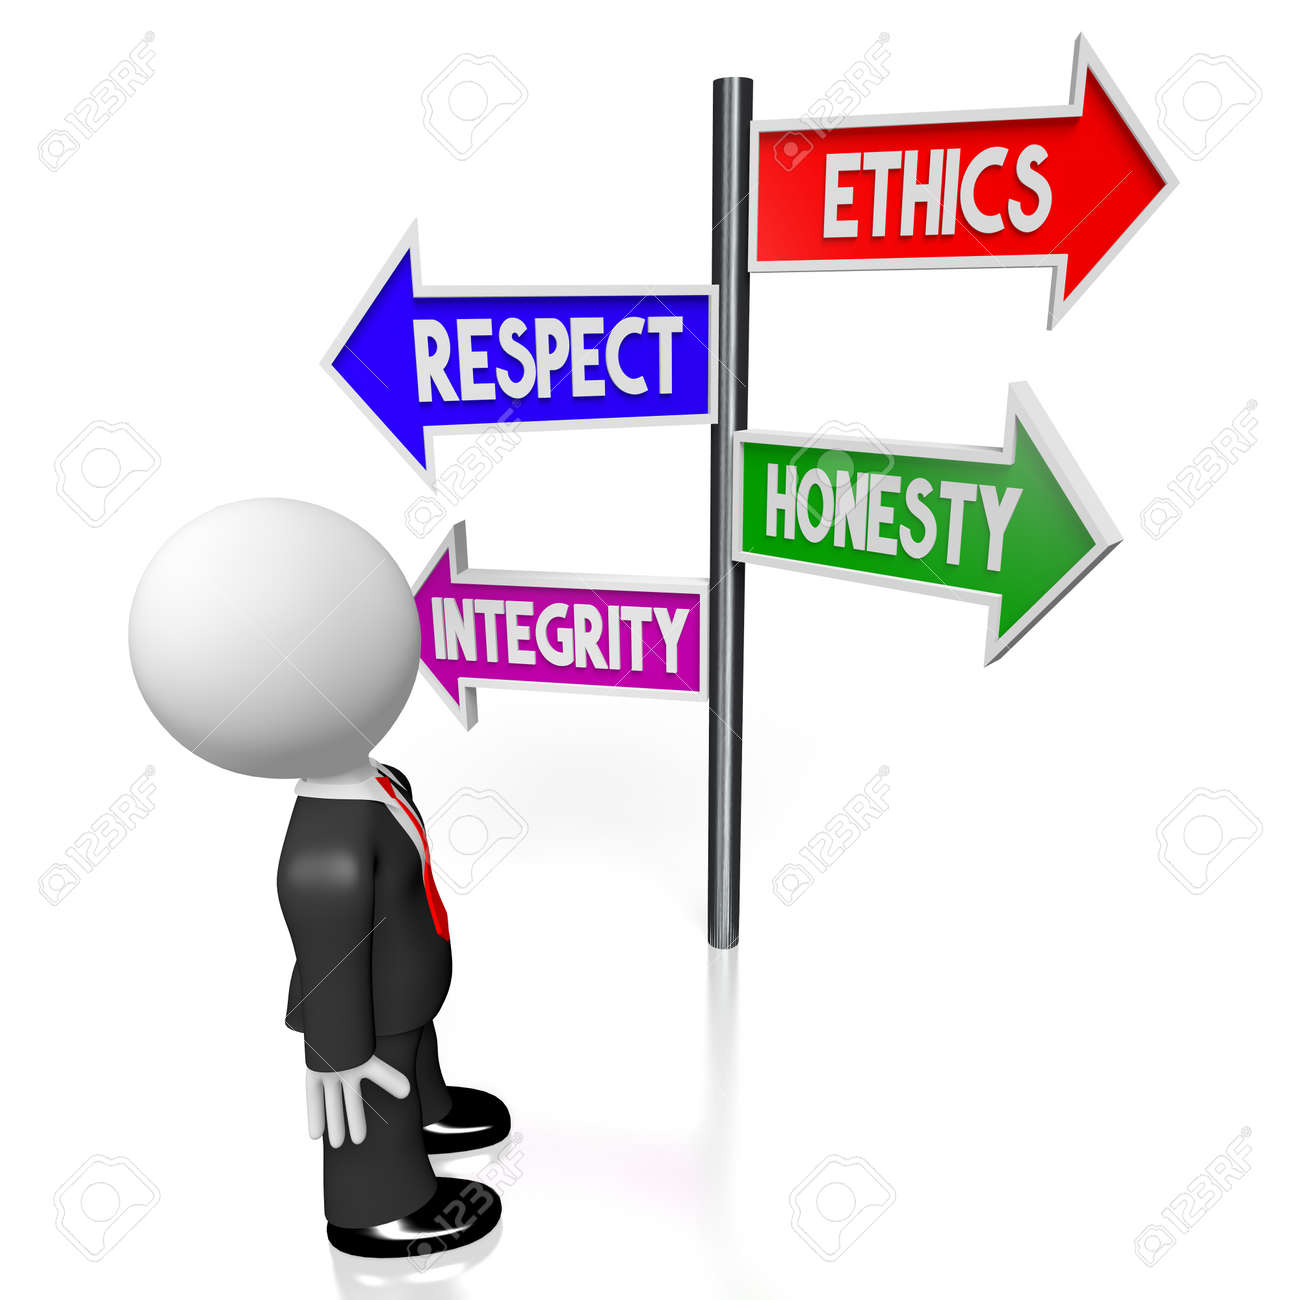 3d ethics respect honesty integrity concept stock photo 3d ethics respect honesty integrity concept stock photo 76493359 biocorpaavc Image collections